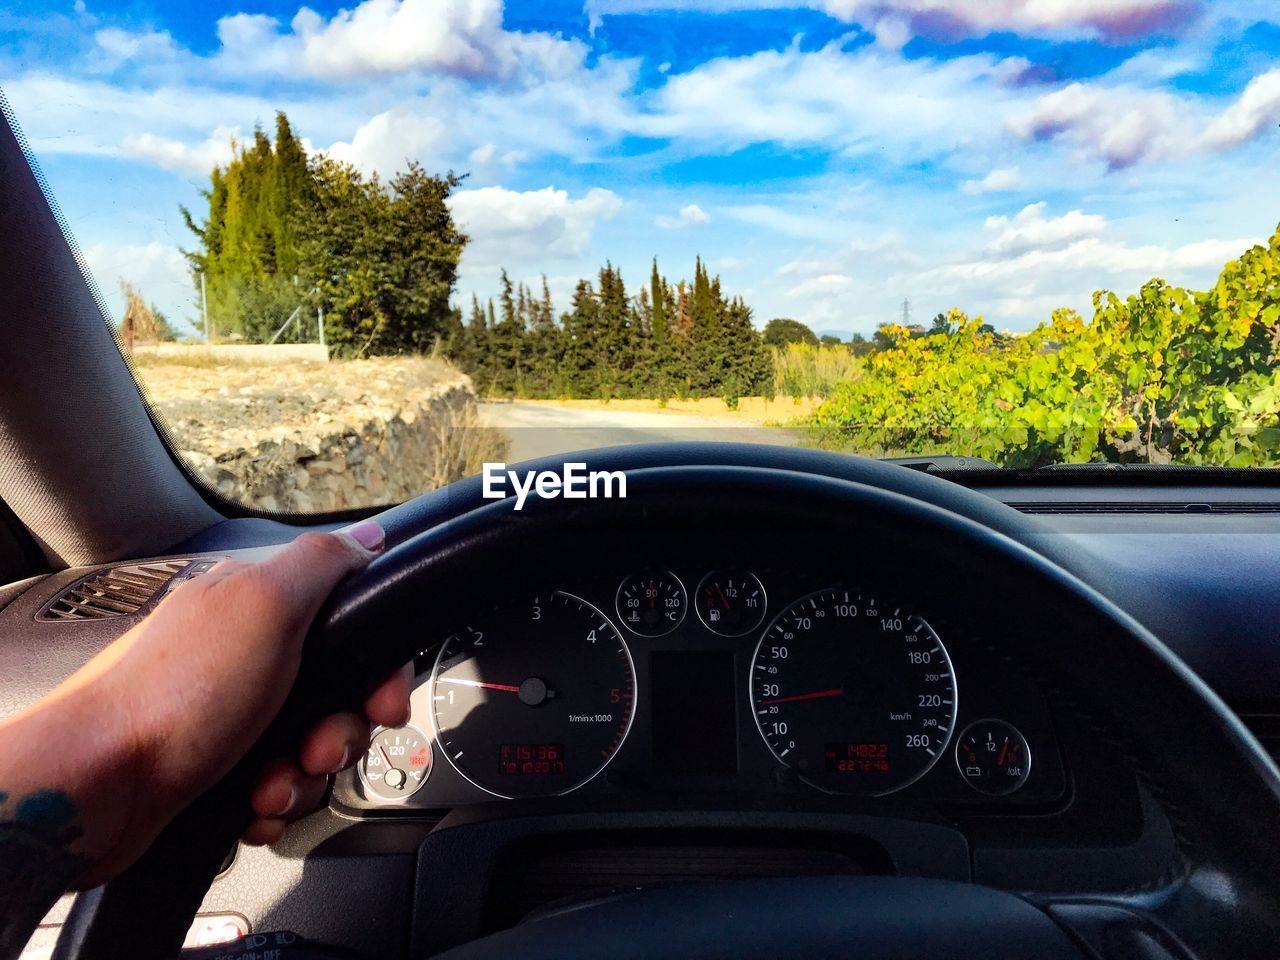 mode of transportation, car, transportation, tree, control panel, vehicle interior, dashboard, cloud - sky, motor vehicle, land vehicle, sky, glass - material, plant, steering wheel, car interior, transparent, nature, real people, day, windshield, speedometer, hand, outdoors, finger